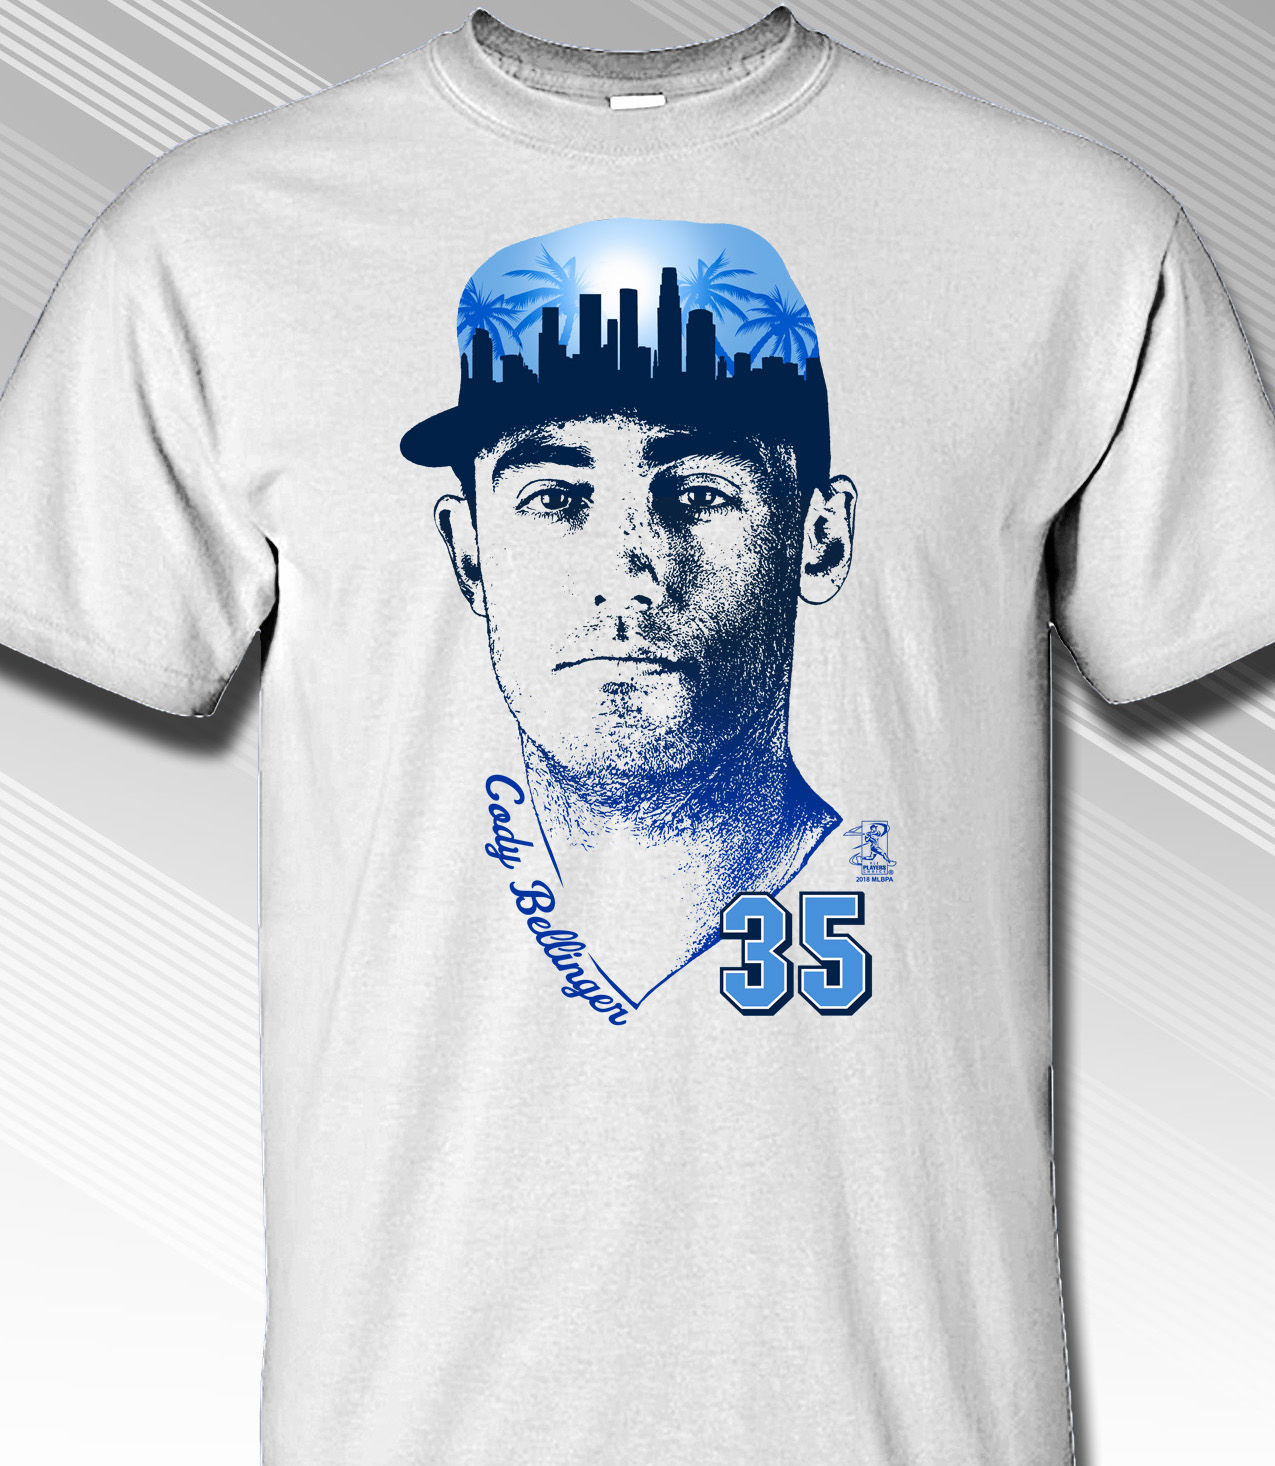 Cody Bellinger Los Angeles Skyline Cap T-Shirt<br>Short or Long Sleeve<br>Youth Med to Adult 4X